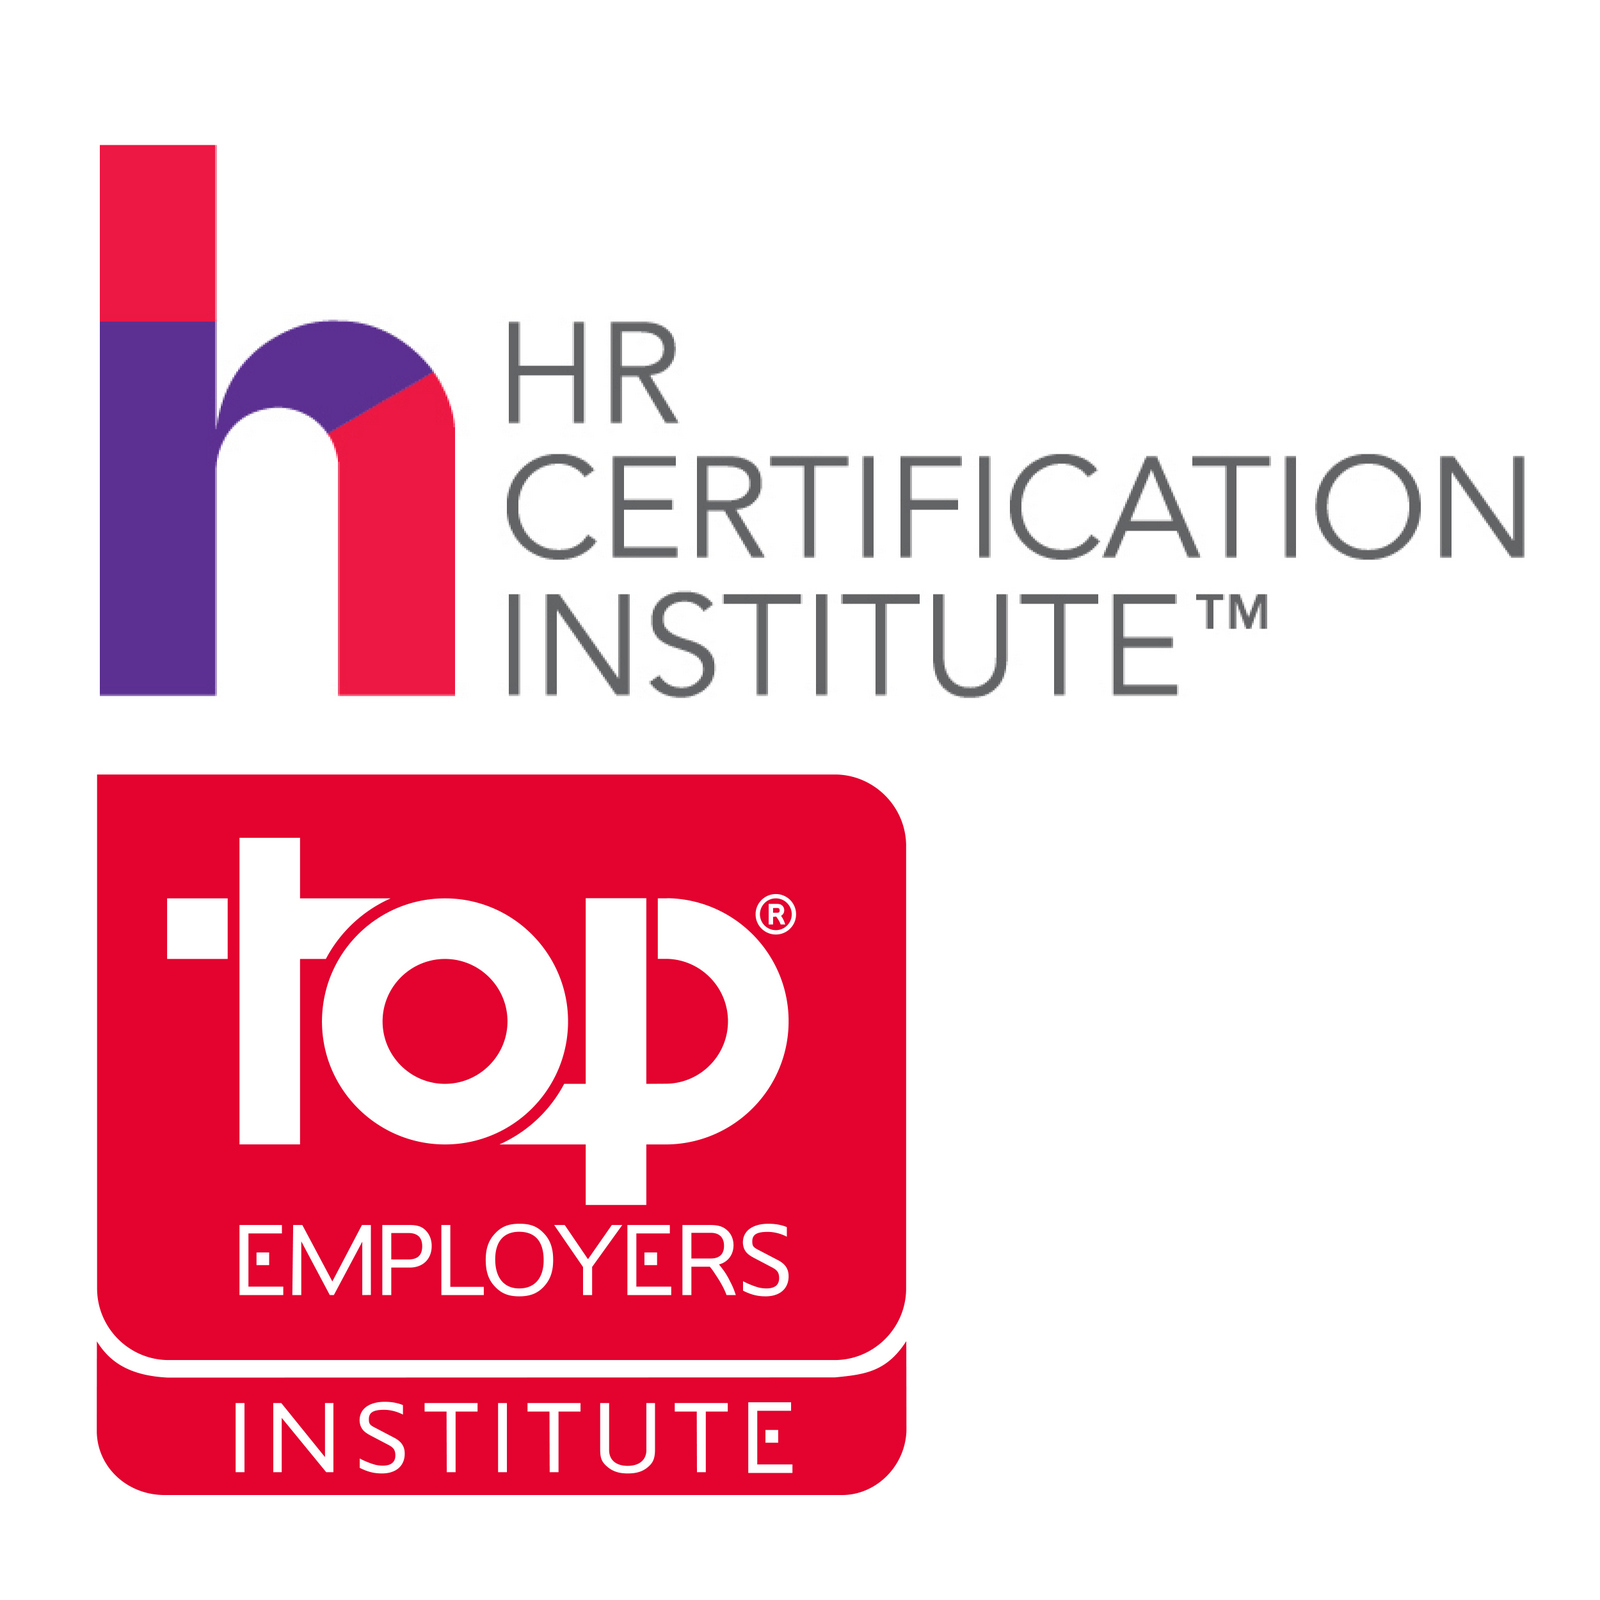 New Research Links Hr Best Practices With Better Business Performance